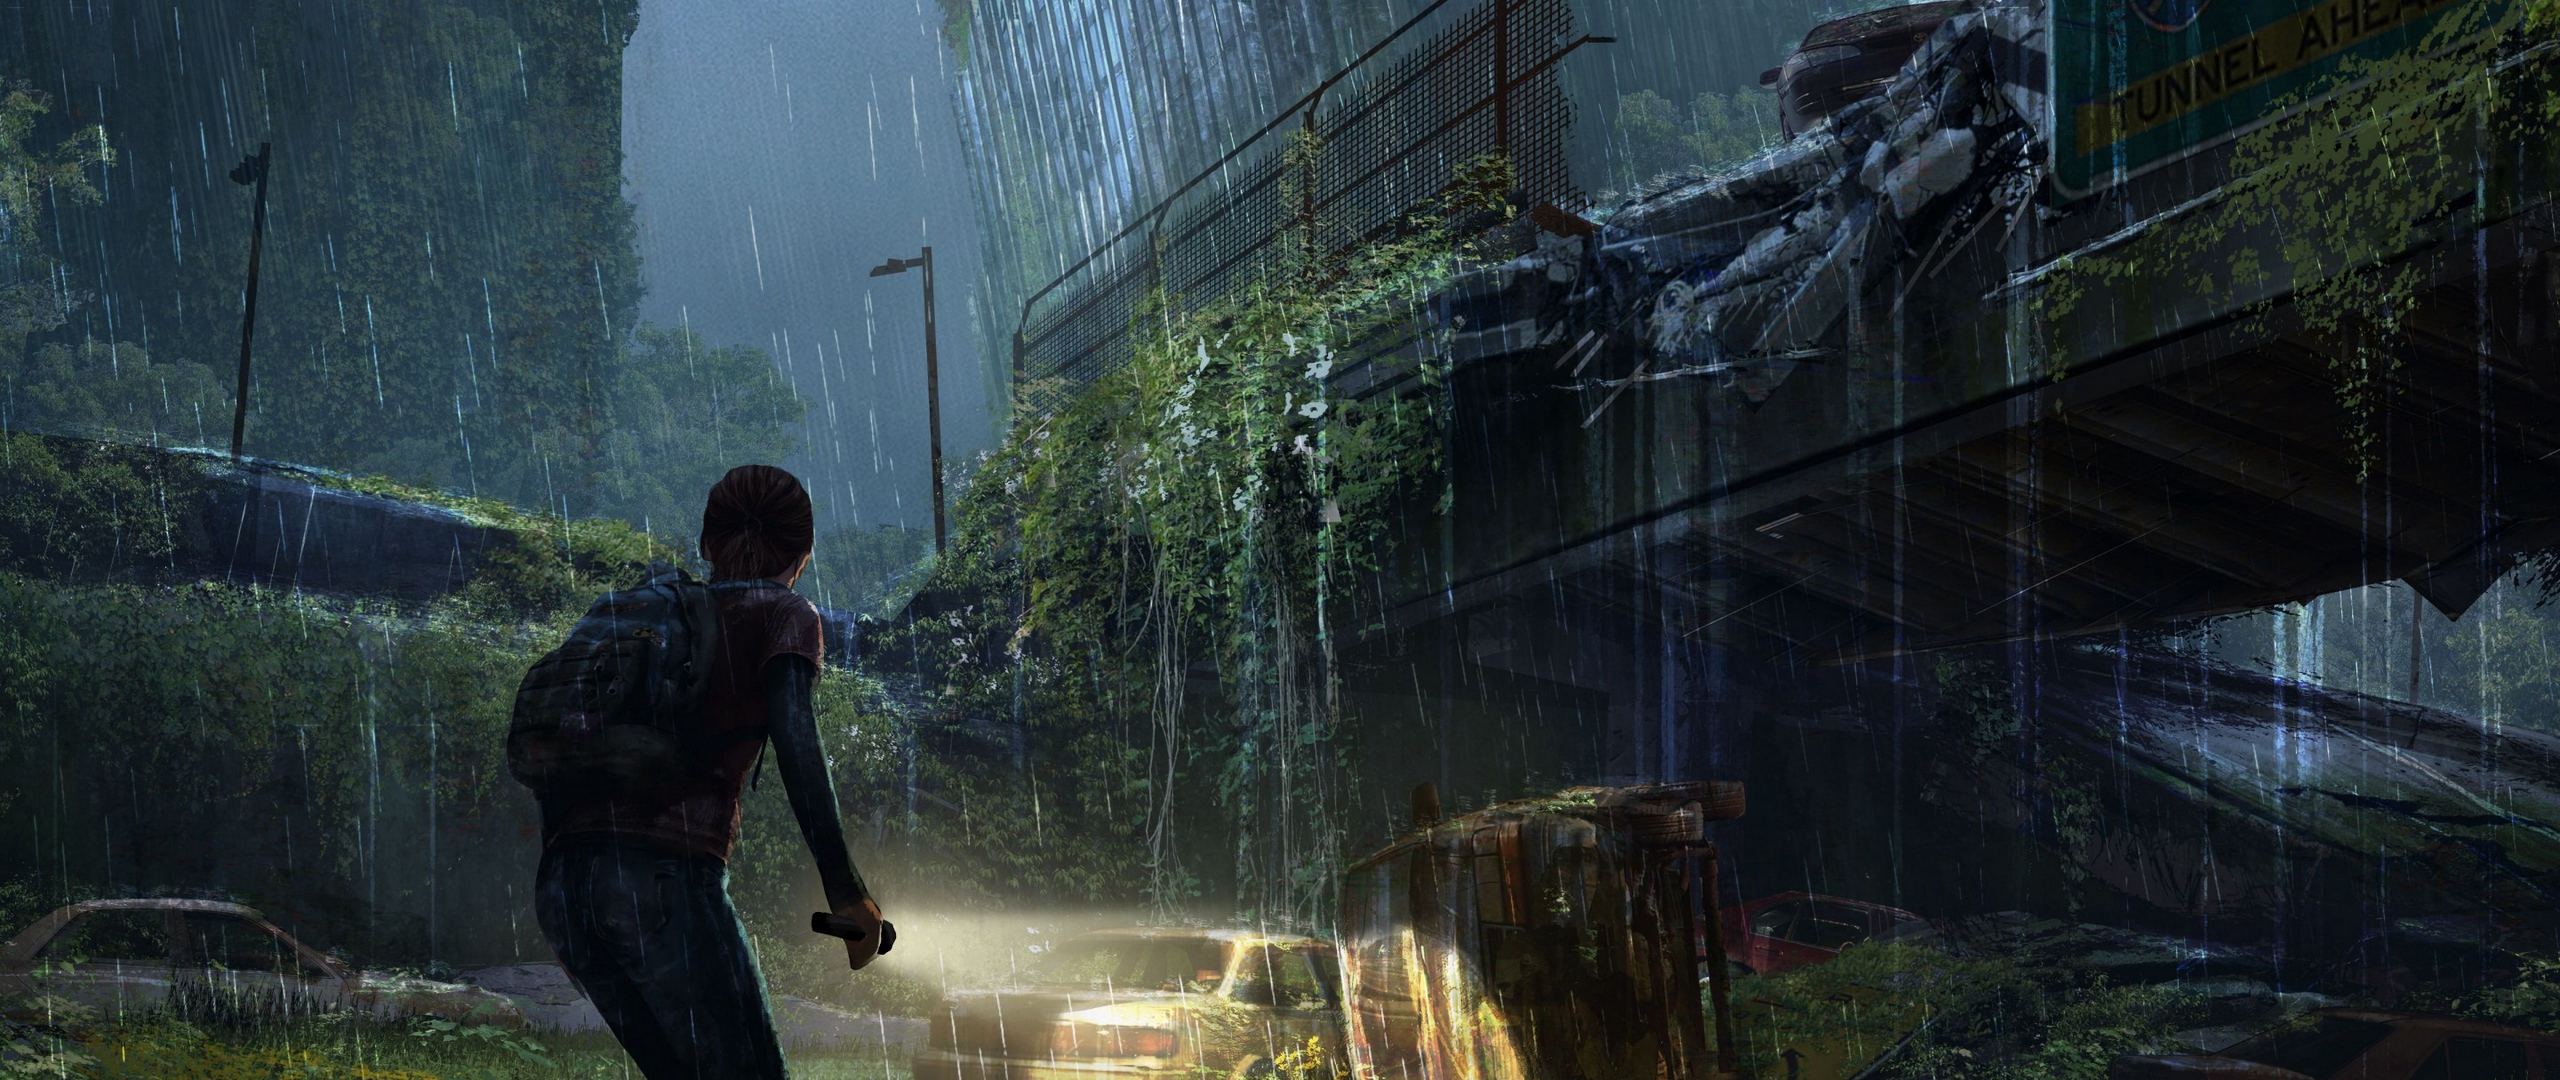 Wallpaper The Last Of Us Apocalypse Girl City Night 608201